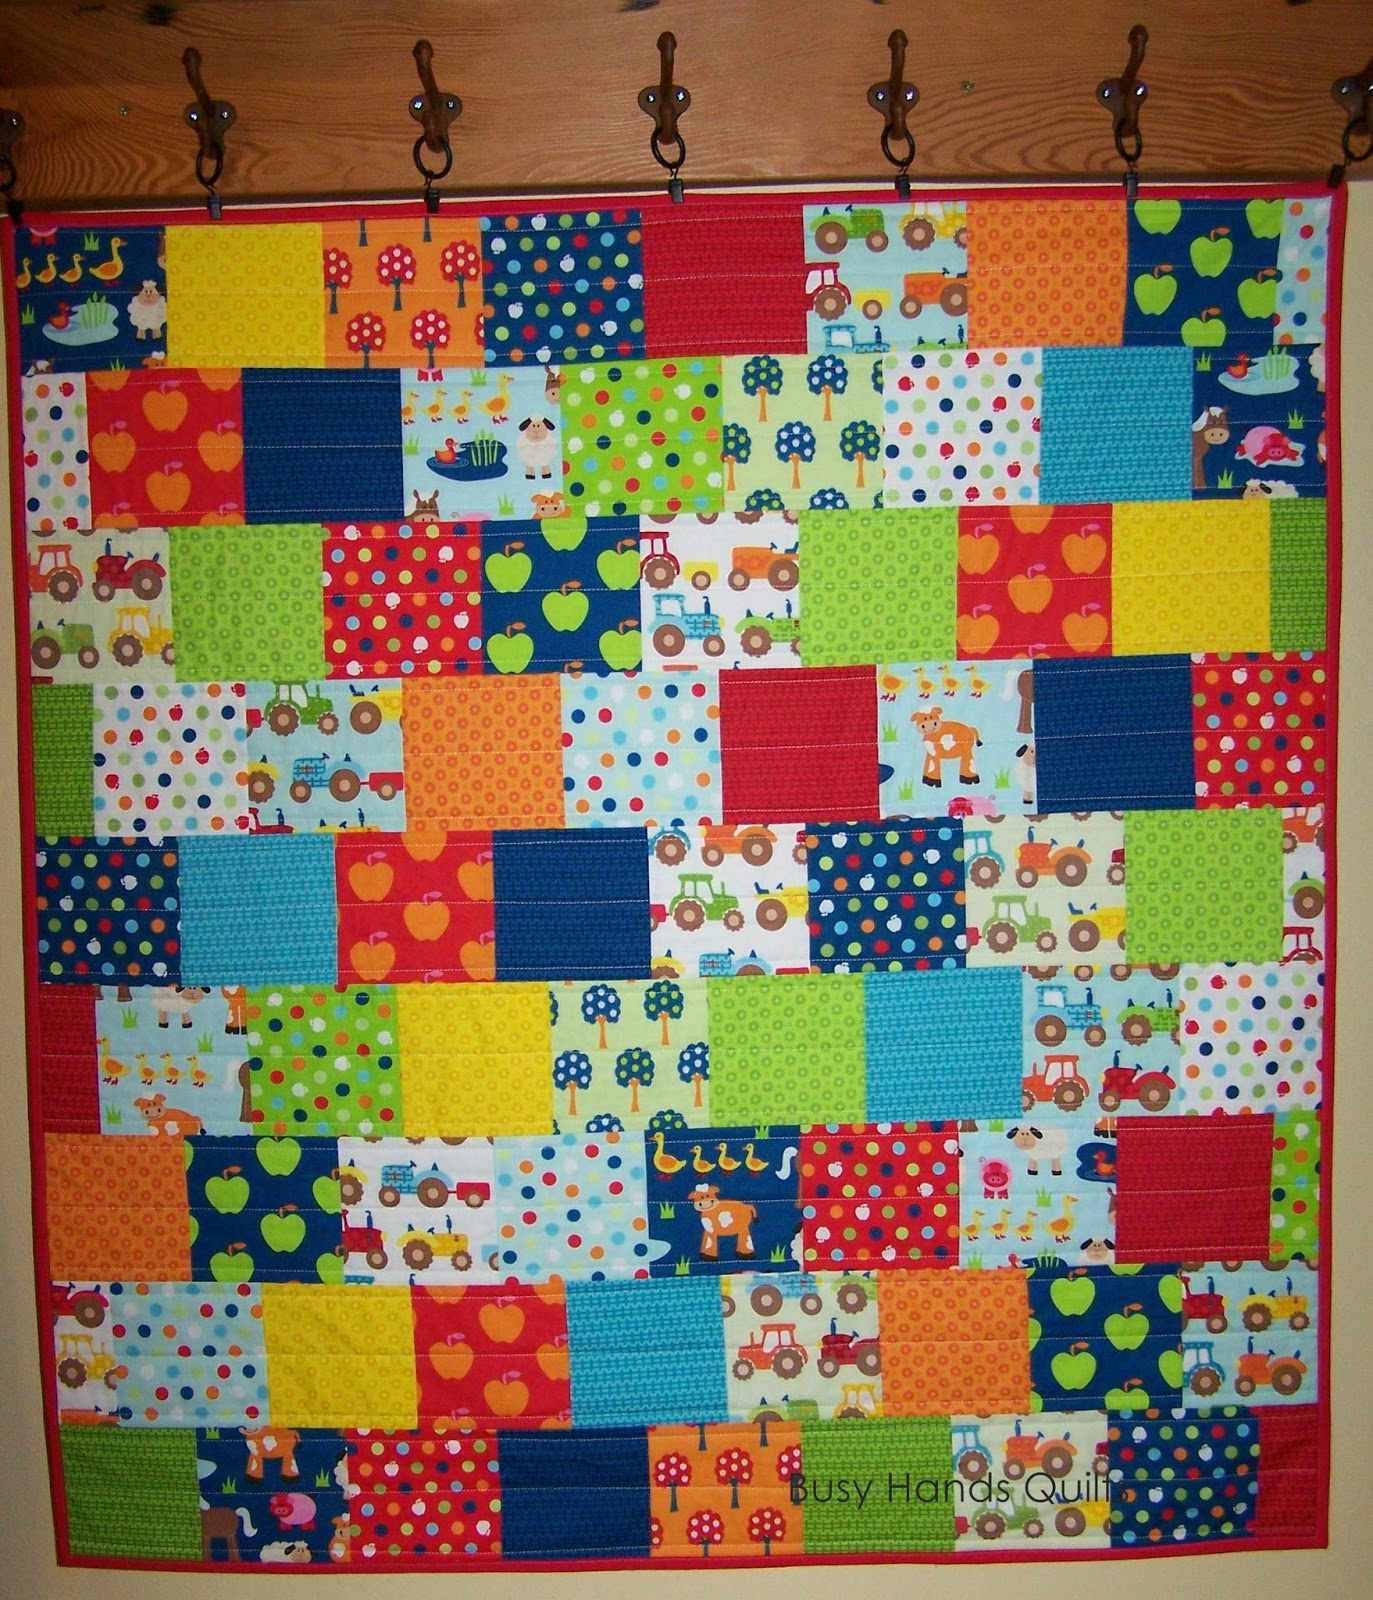 Busy Hands Quilts: Apple Hill Farm Baby Quilt {Custom Quilting} : custom photo quilts - Adamdwight.com